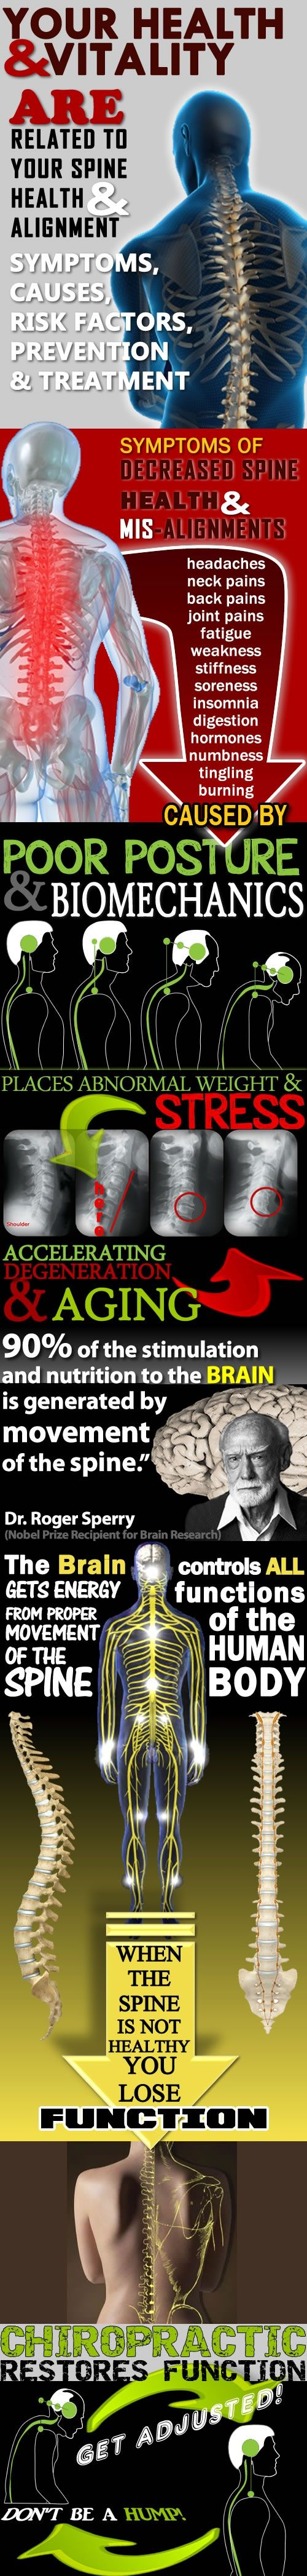 Your Health & Vitality are related to your spine heath & alignment: Symptoms, causes, risk factors, prevention & treatment.